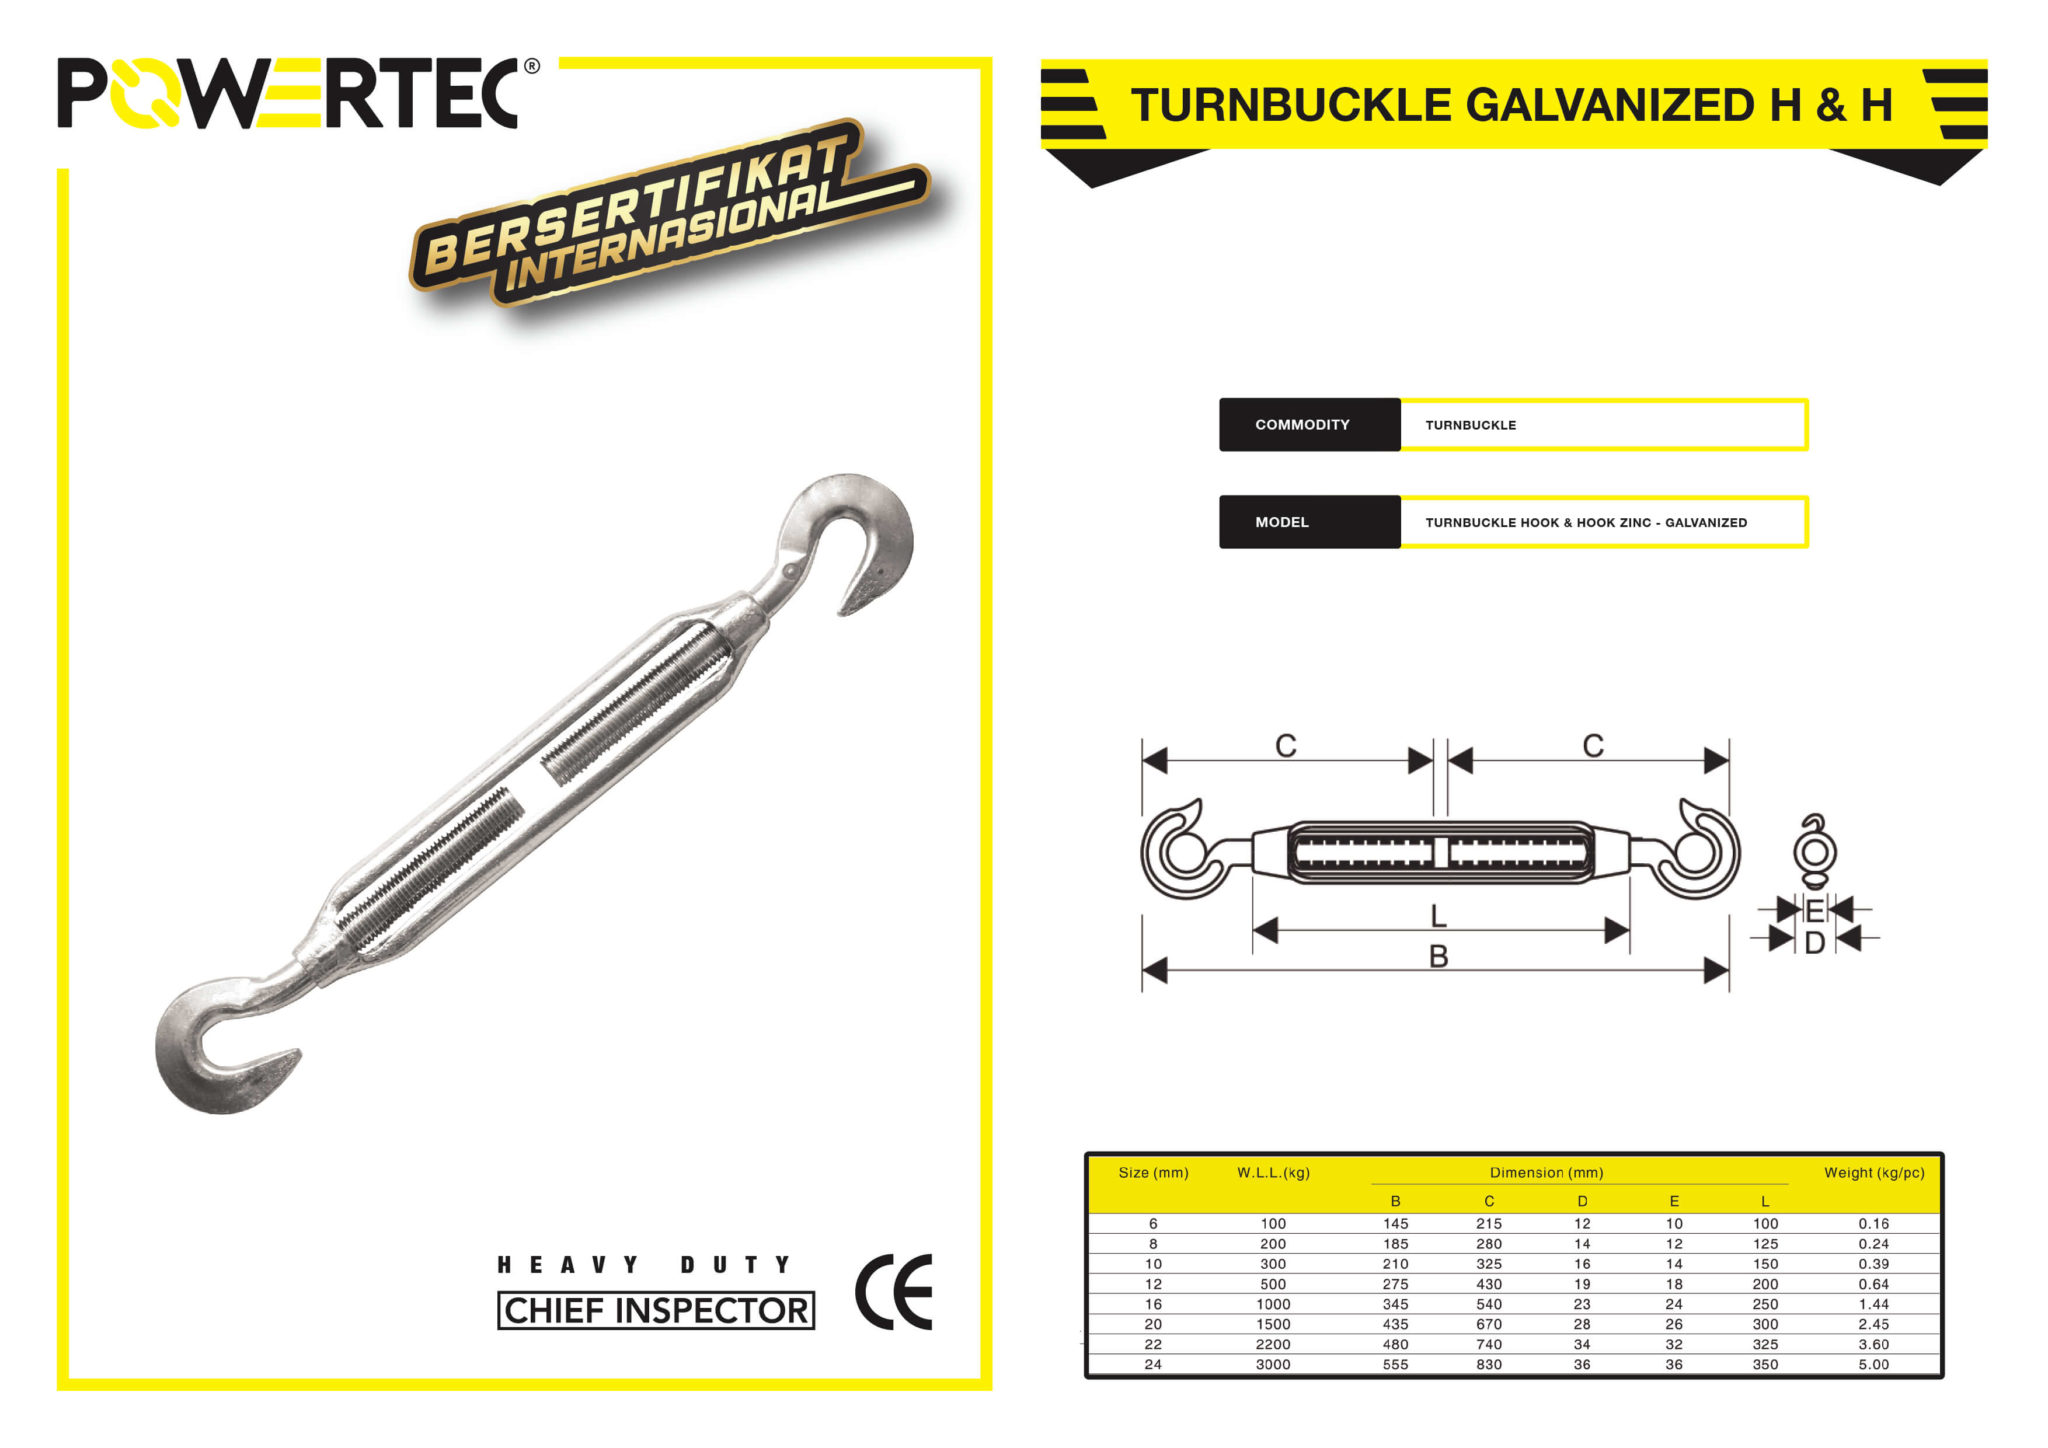 POWERTEC TURNBUCKLE GALVANIZED HOOK & HOOK BROCHURE